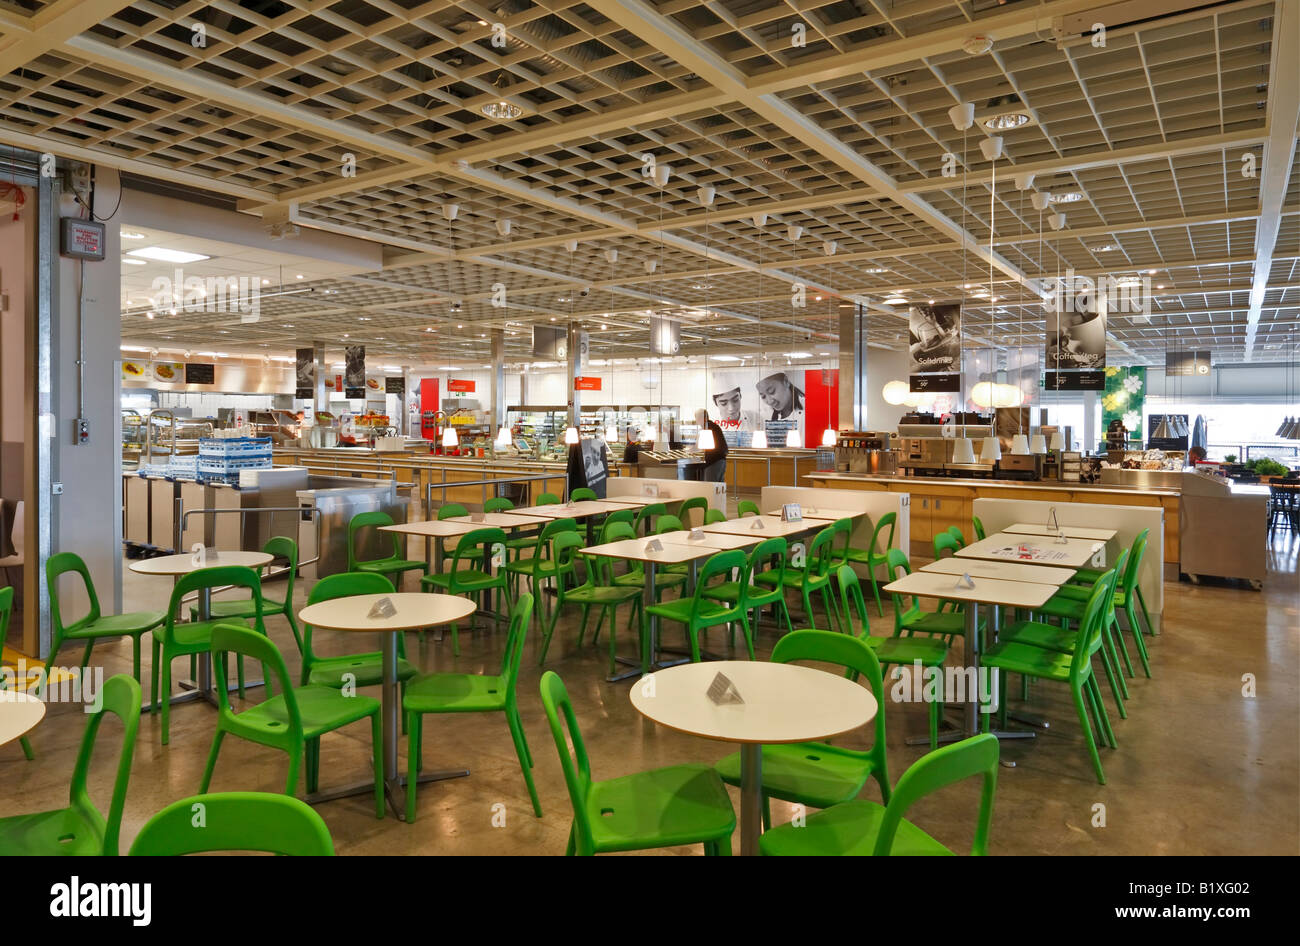 Restaurant bei ikea m bel lagern in coventry stockfoto for Restaurant ikea miami